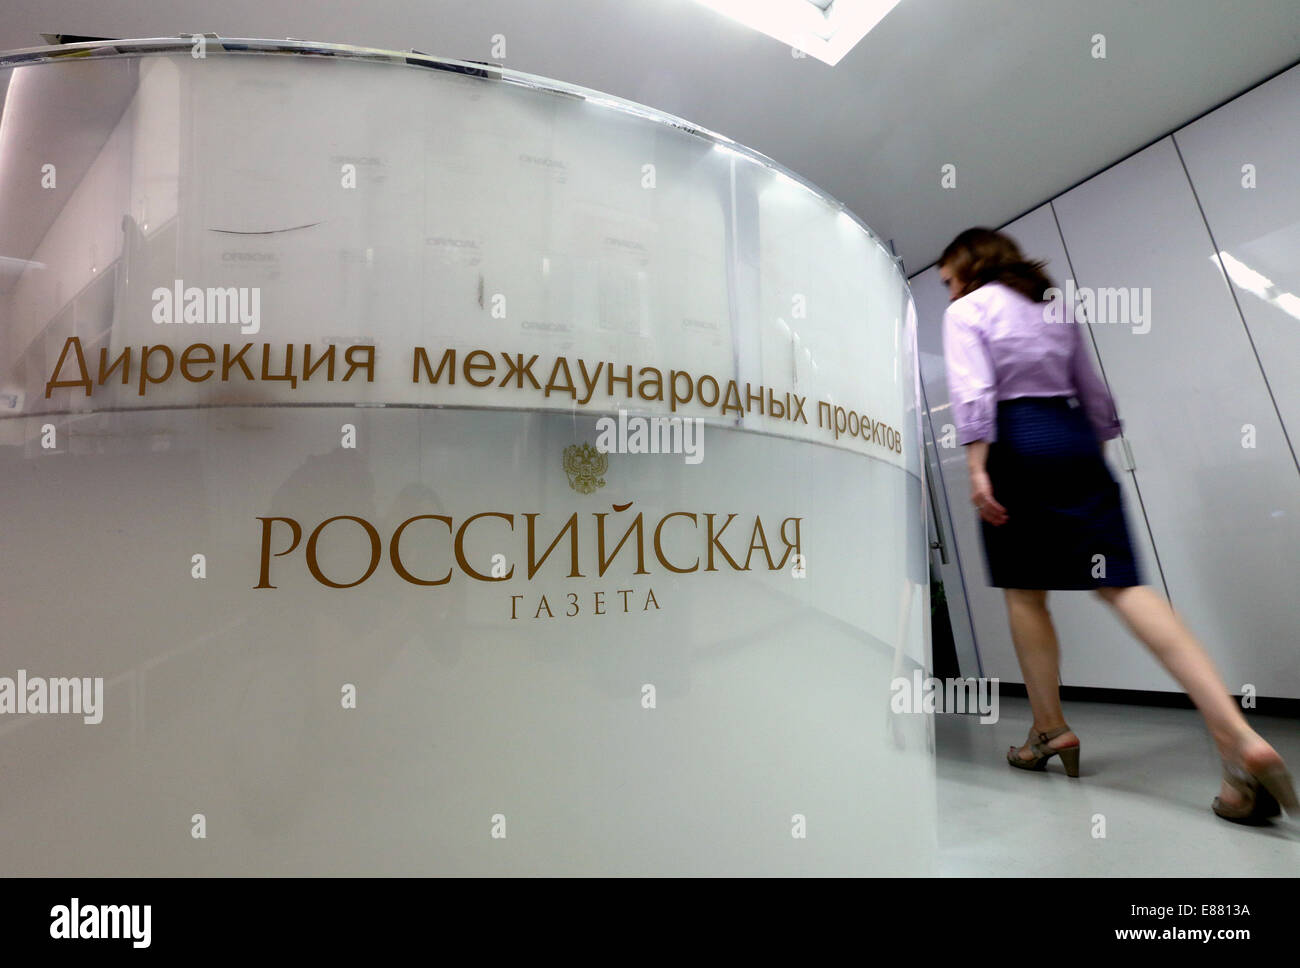 MOSCOW, RUSSIA. OCTOBER 2, 2014. A reception desk of the Rossiyskaya Gazeta, the Russian Government's official - Stock Image